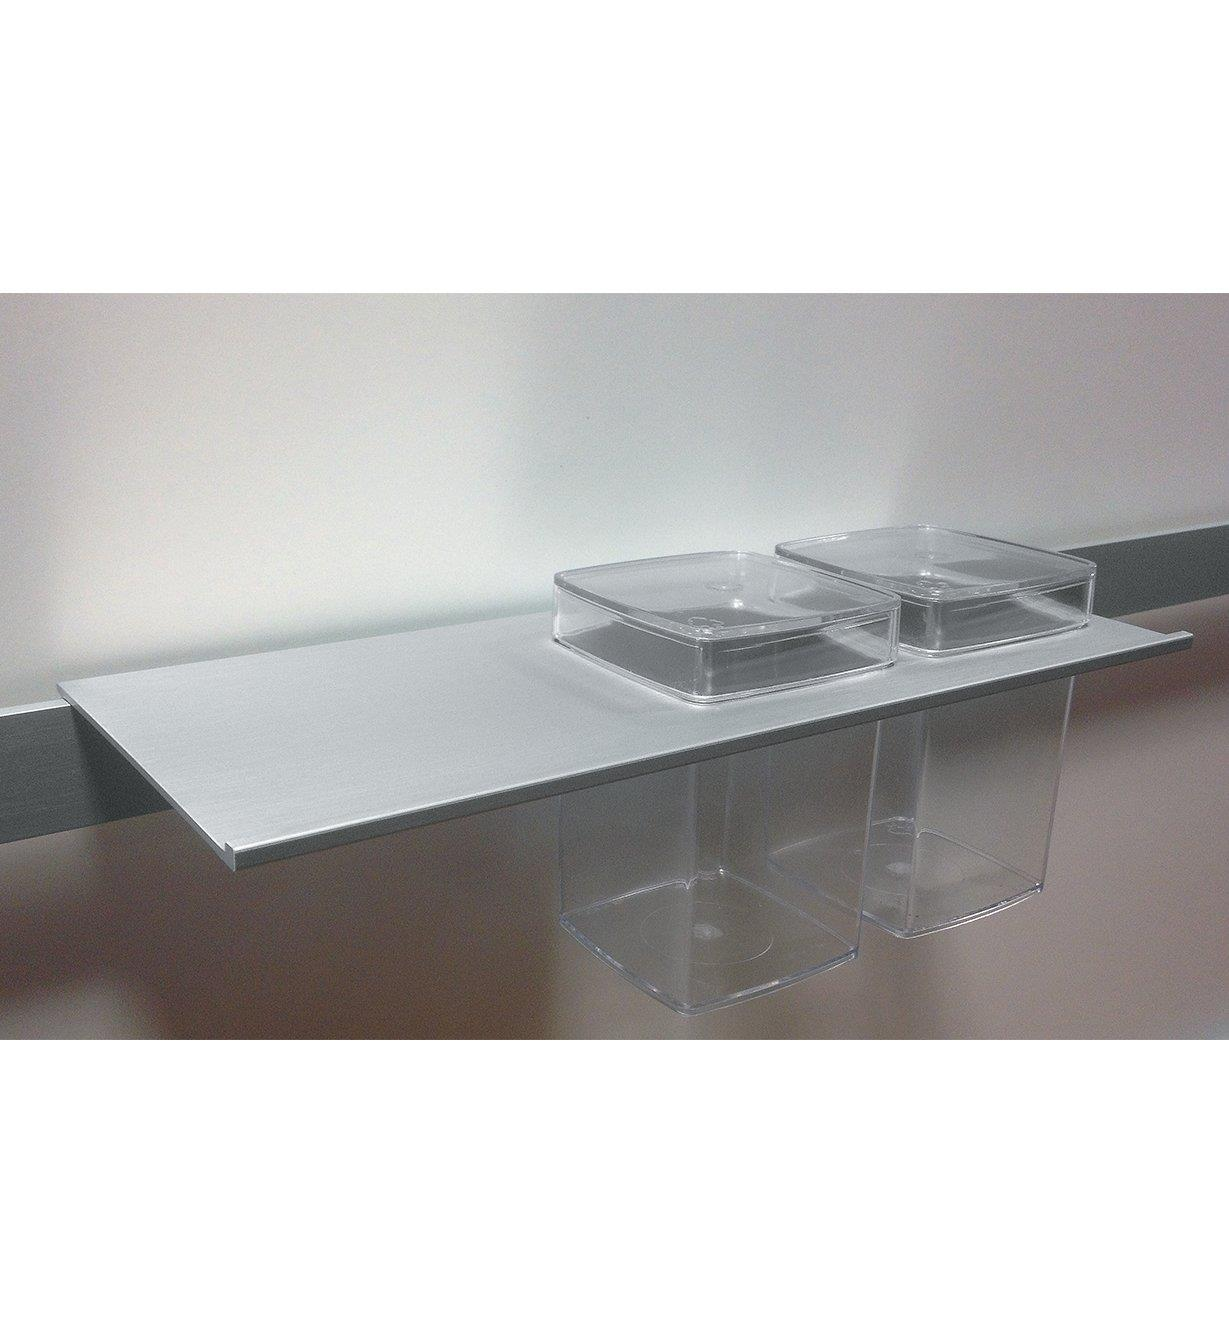 12K5122 - 30cm Rail-Mount Shelf with 2 Plastic Bins